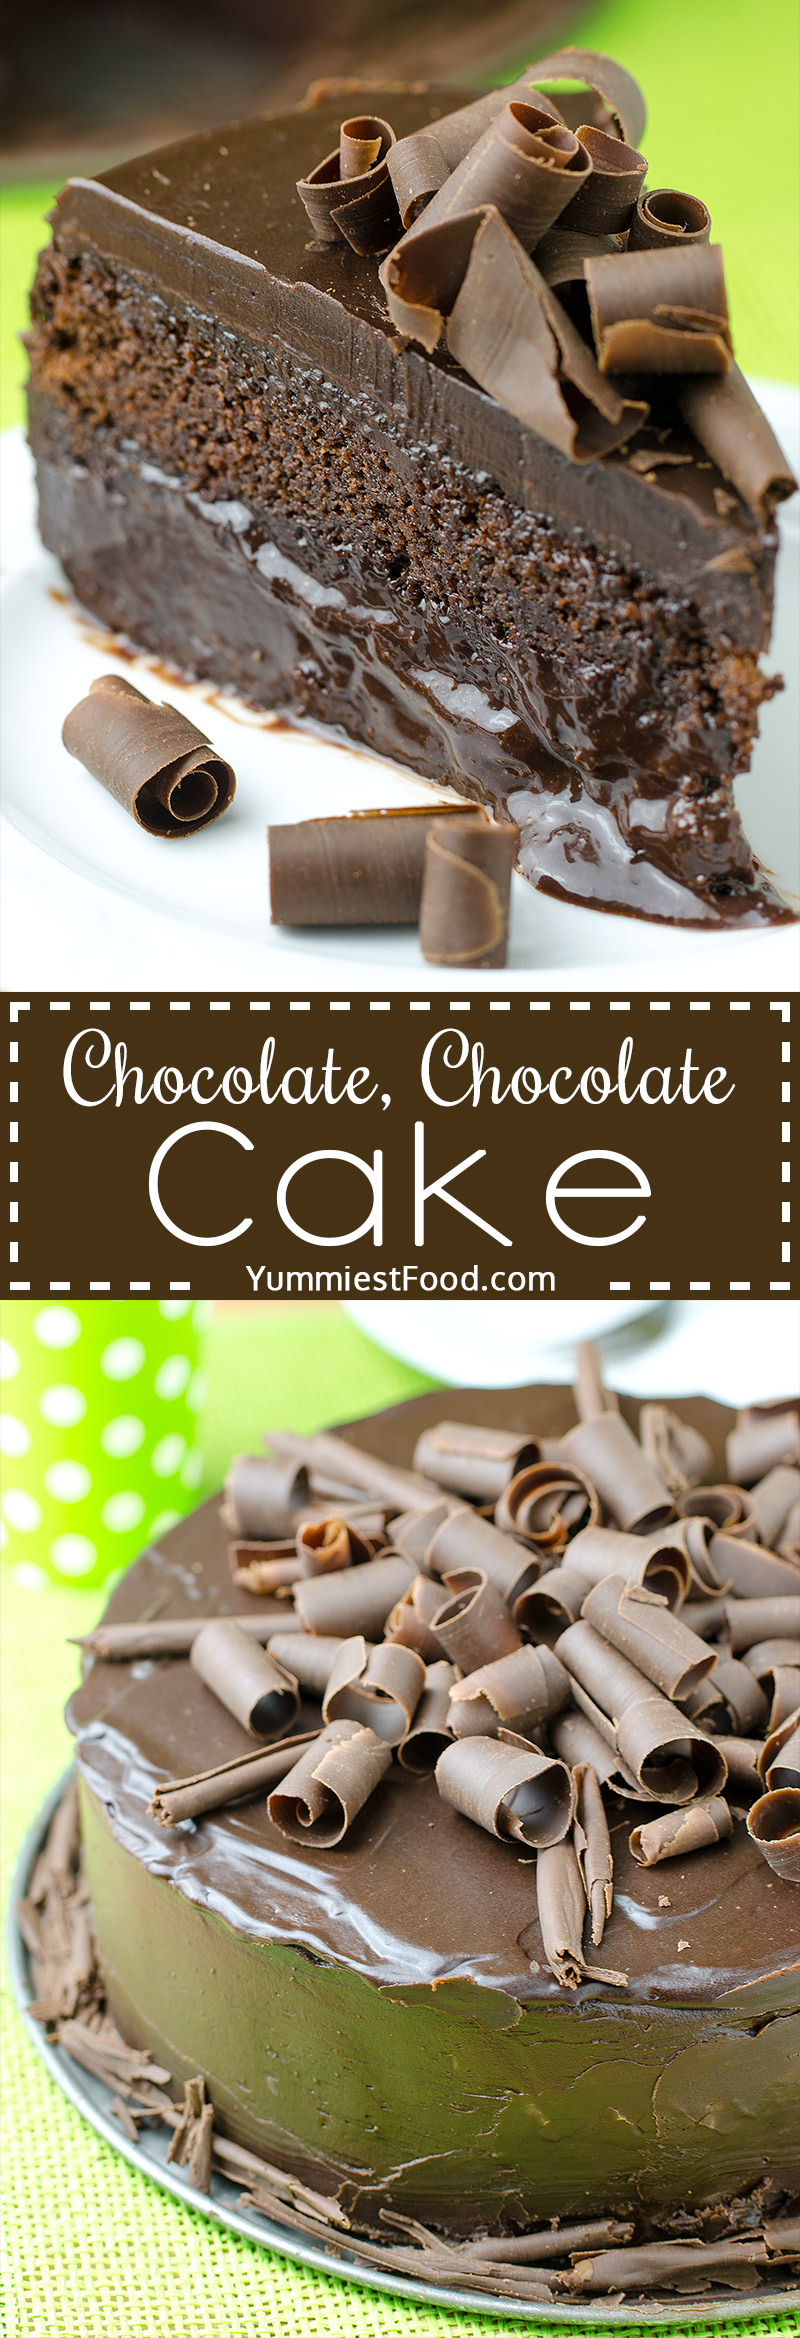 CHOCOLATE, CHOCOLATE CAKE - This decadent chocolate dessert is rich, moist and it is only chocolate cake recipe you will ever need.